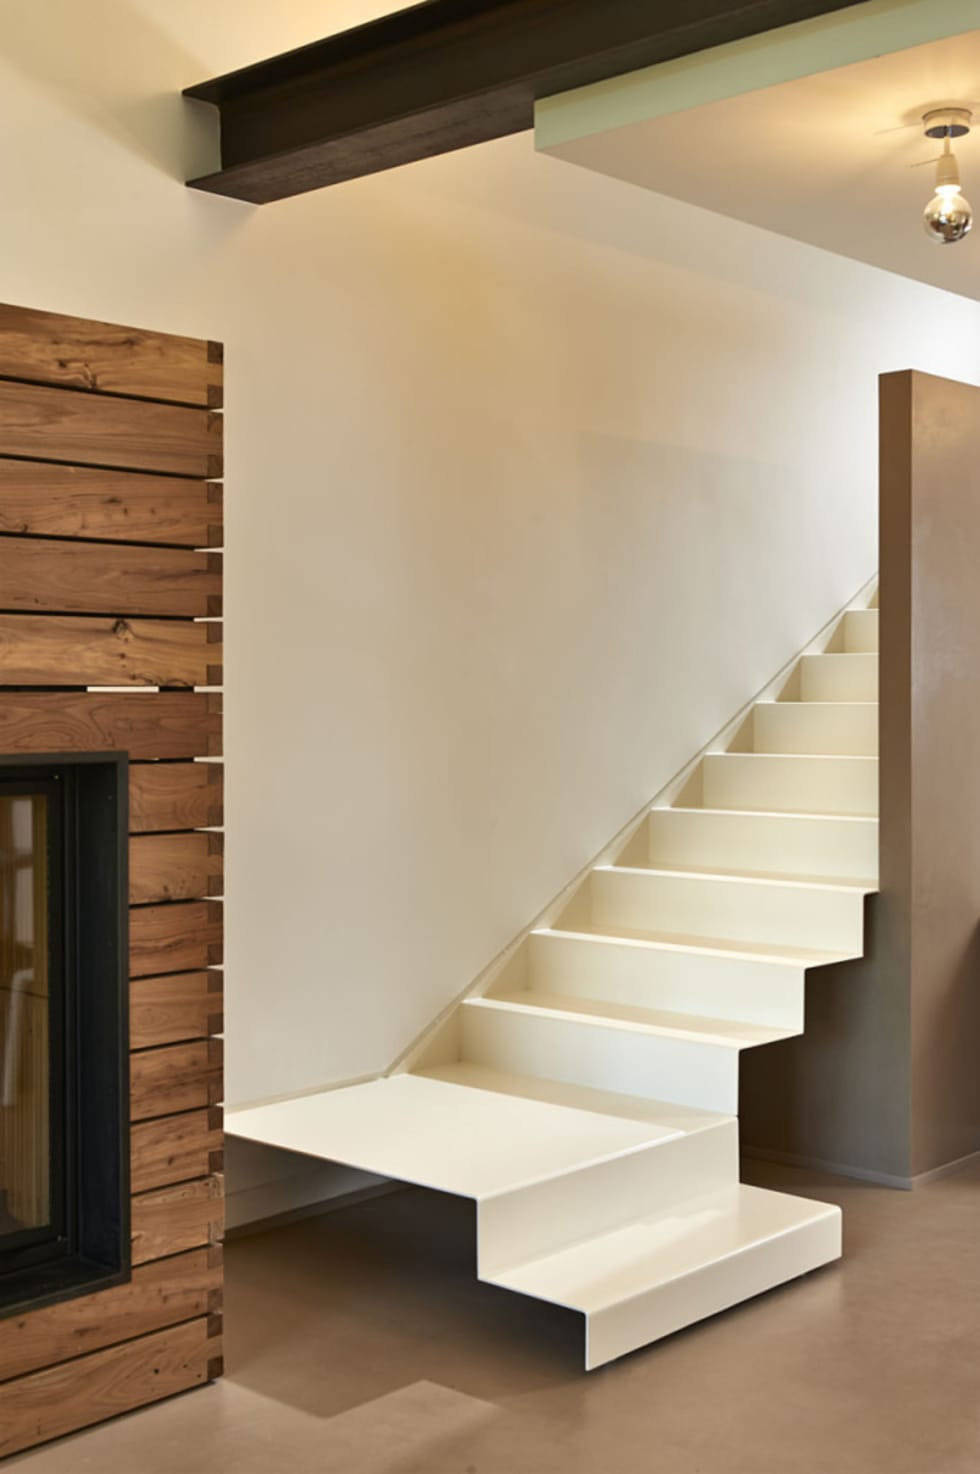 Interior design ideas inspiration pictures homify for Escaleras modernas